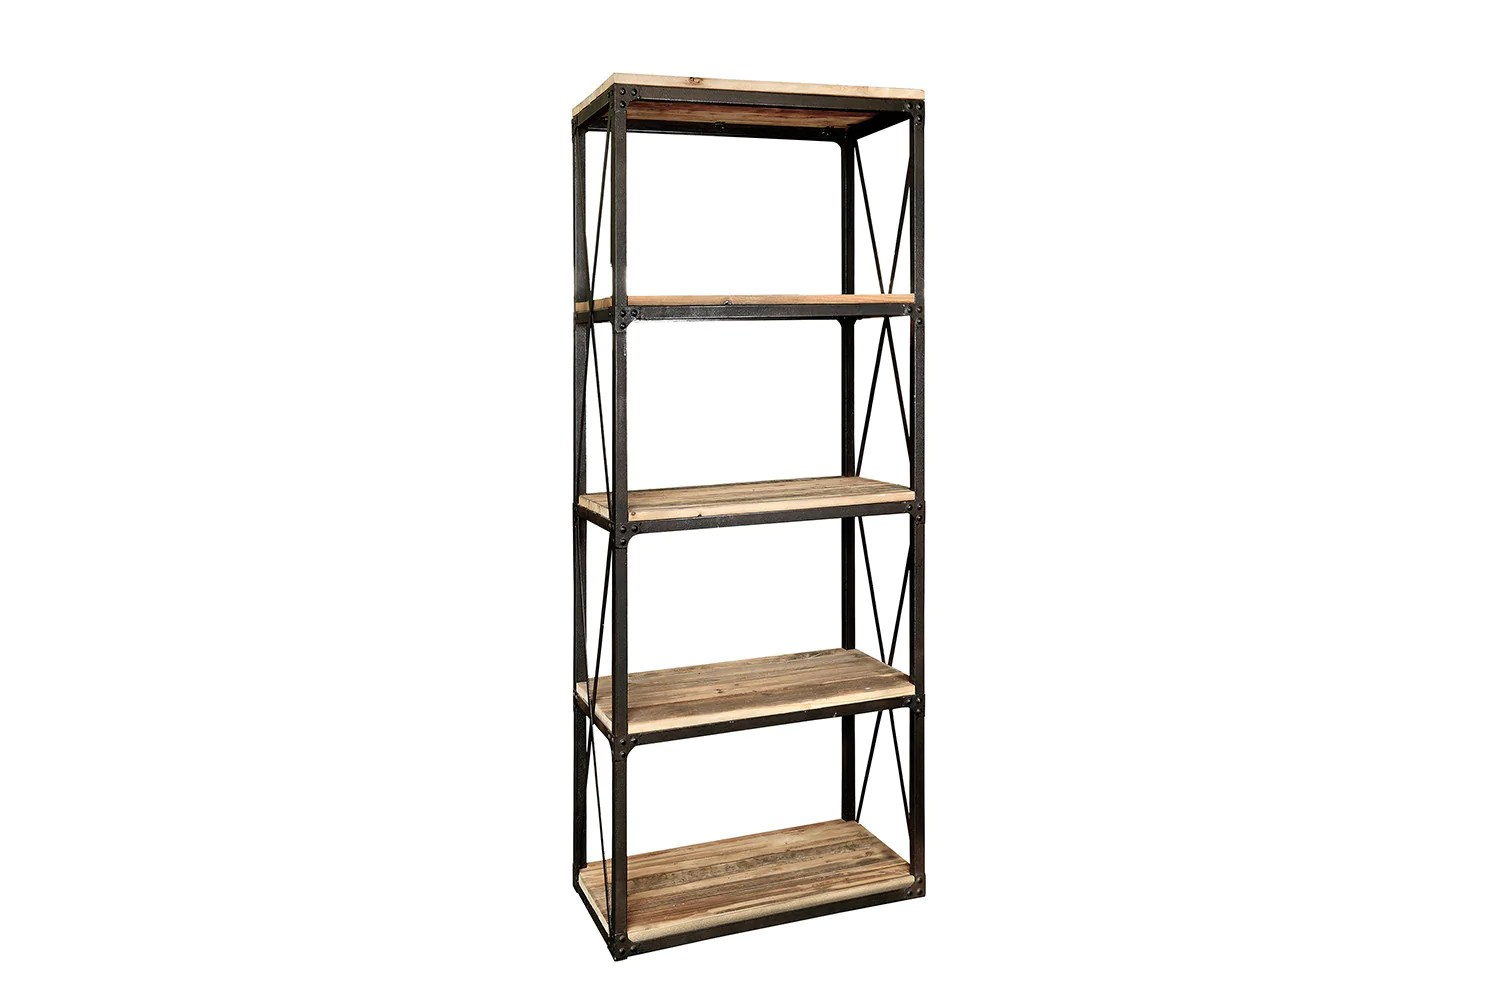 Sellette Design Verre Etagere Industrielle